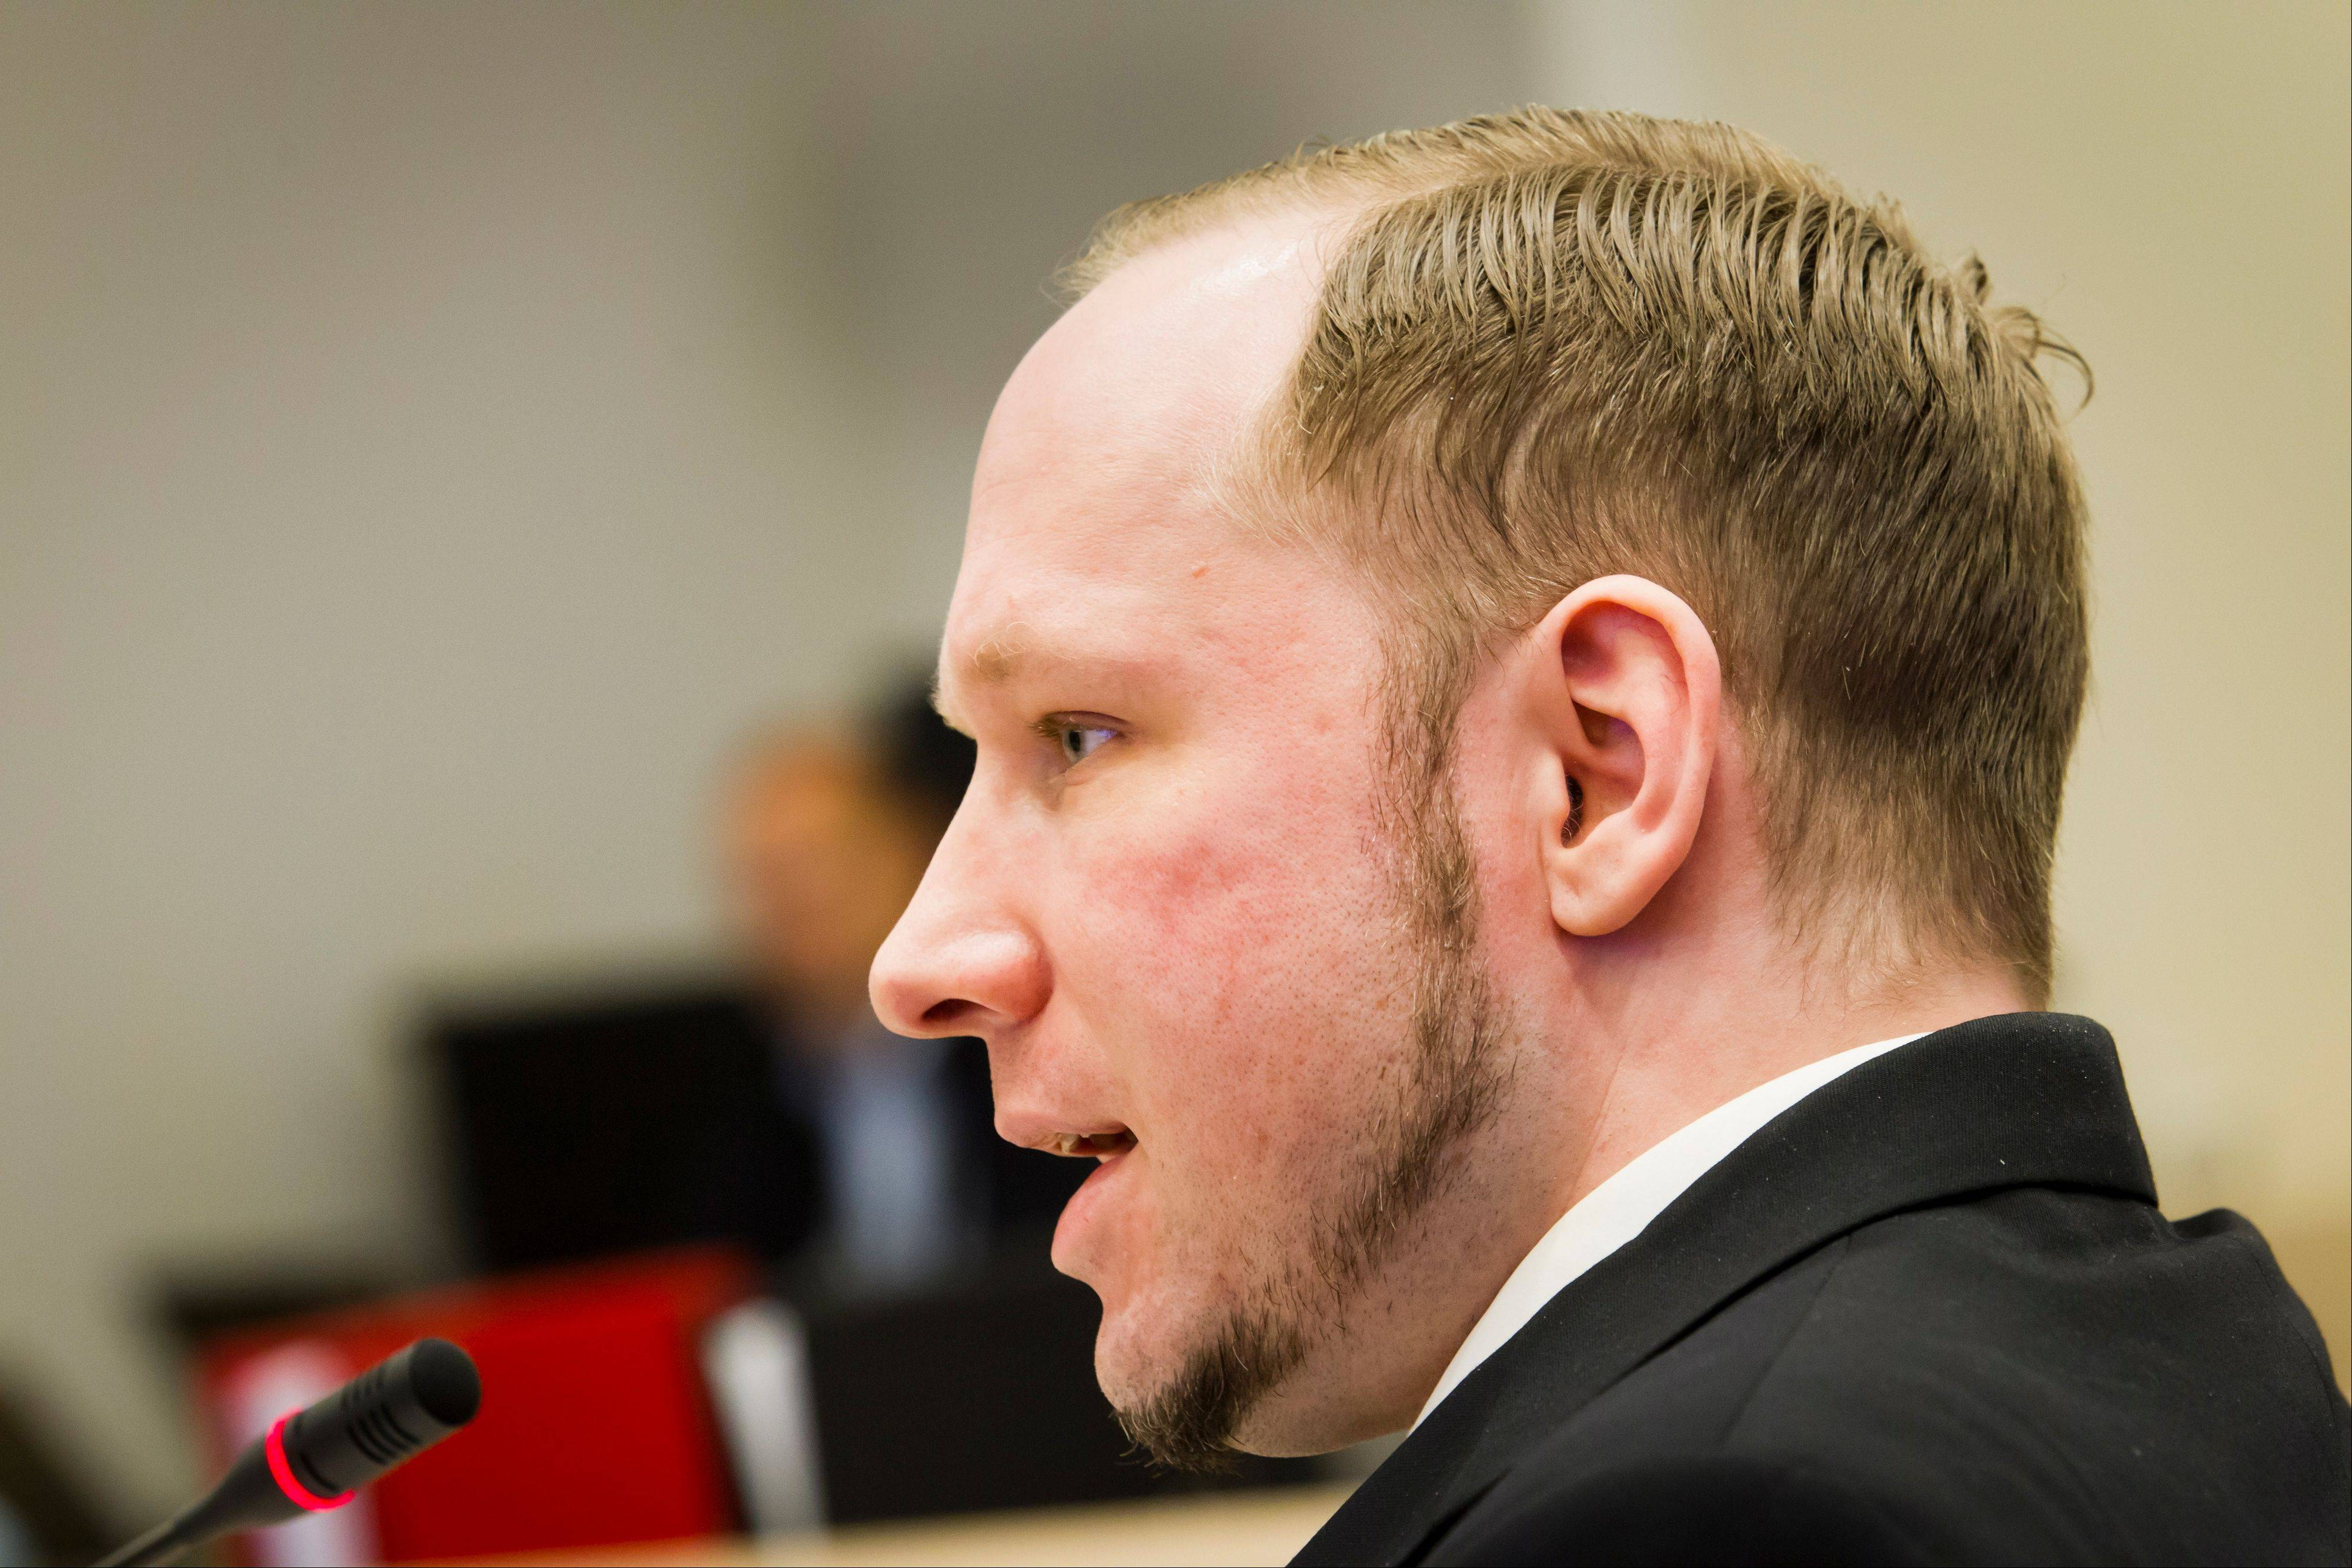 Defendant Anders Behring Breivik seen during the fourth day of proceedings in courtroom in Oslo Thursday April 19, 2012. Confessed mass killer Anders Behring Breivik thought he had only a slim chance of escaping Norway's capital alive after setting off a bomb in the government district on July 22, he told a court Thursday.